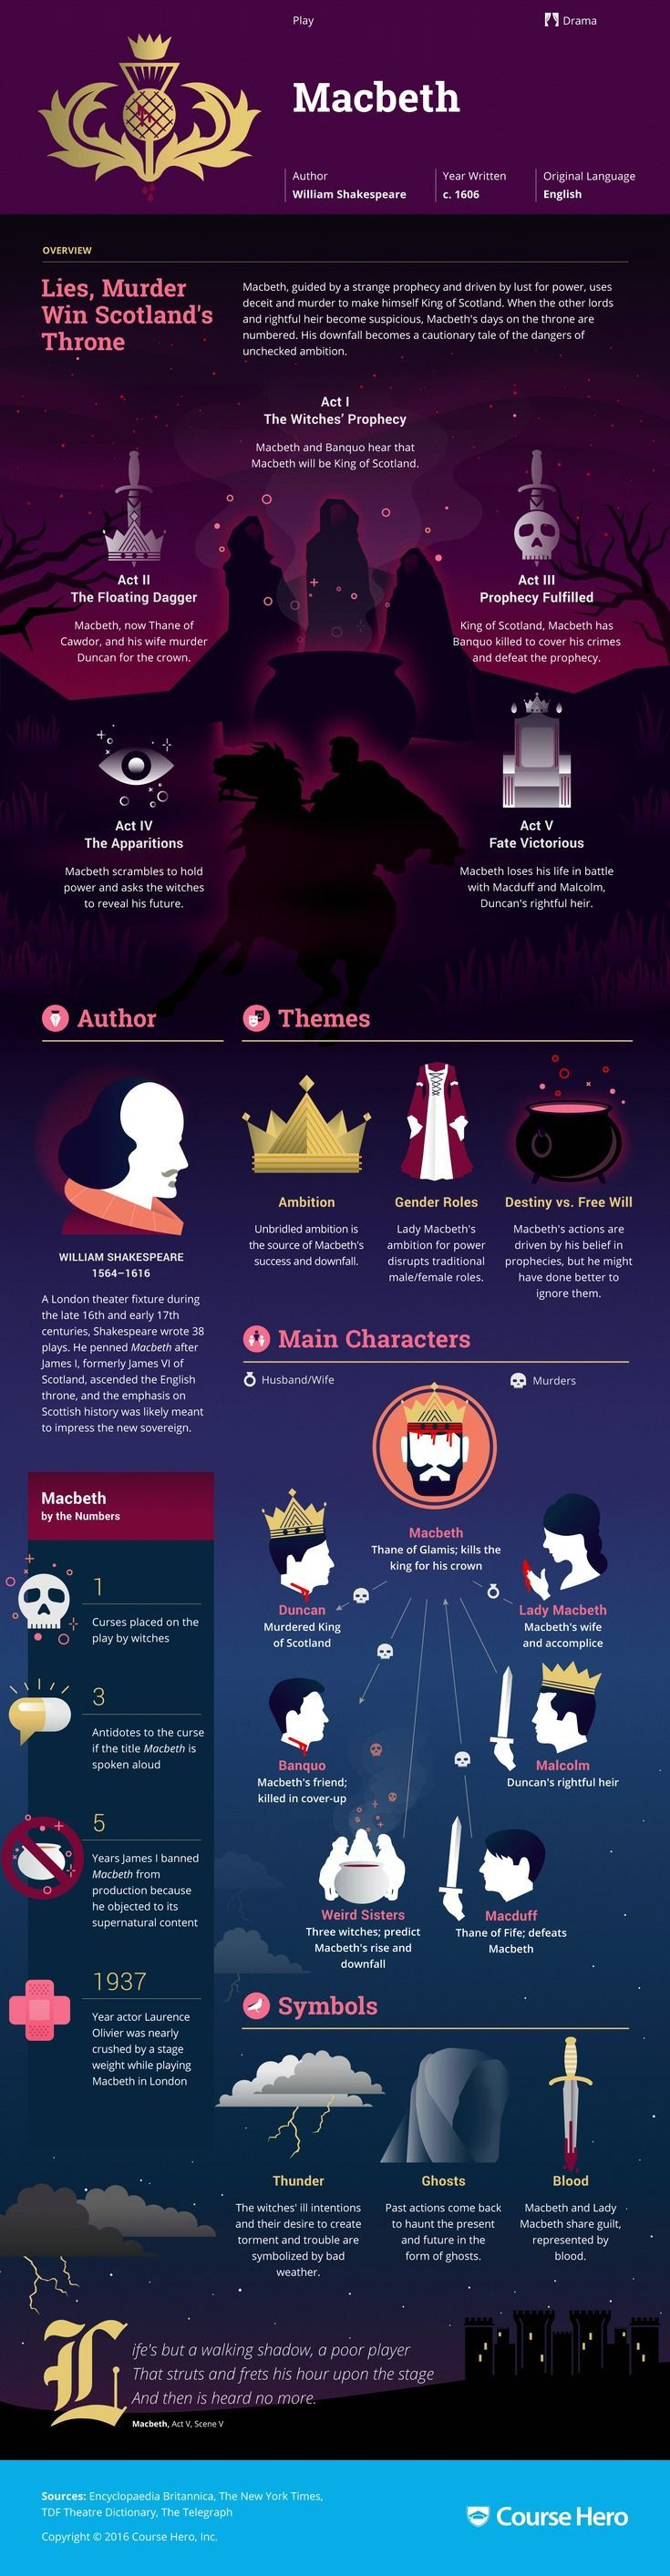 17 best ideas about macbeth summary macbeth themes study guide for william shakespeare s macbeth including scene summary character analysis and more learn all about macbeth ask questions and get the